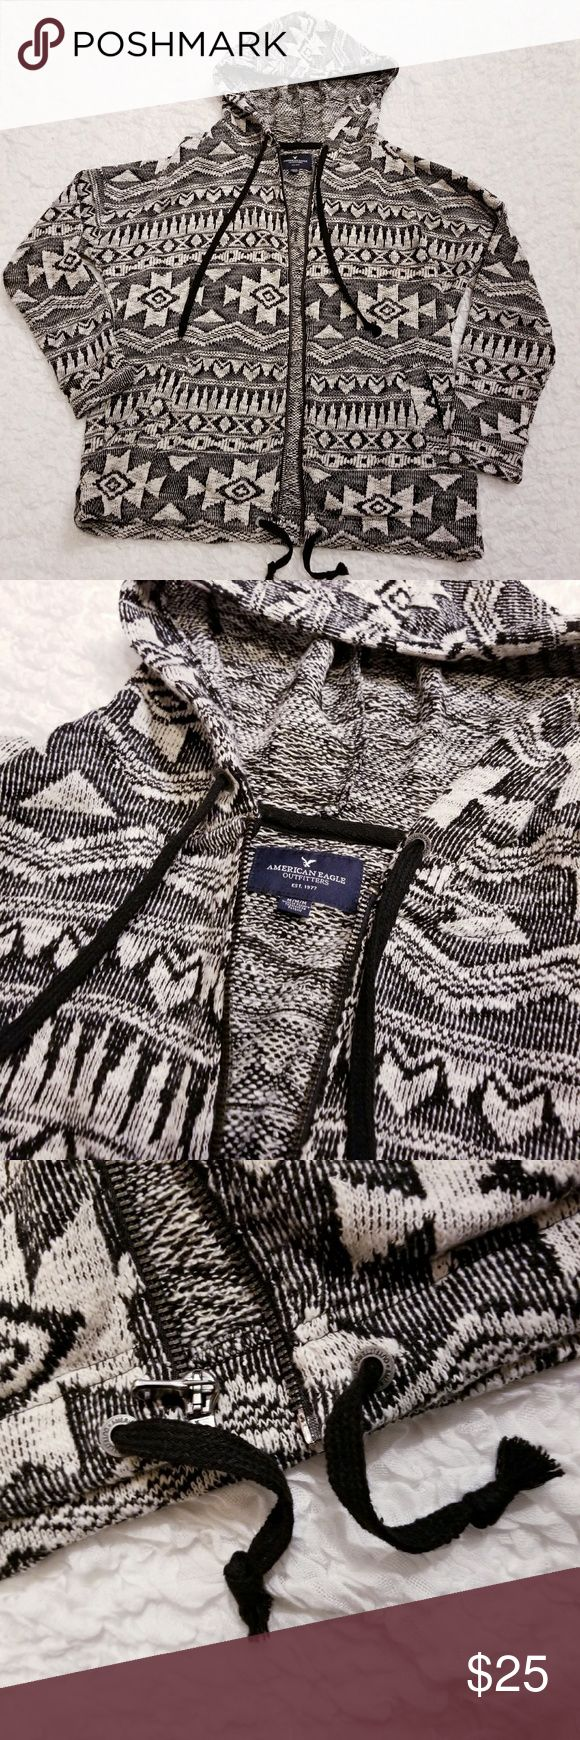 """Aztec Print Zippered Hoodie by AE Outfitters American Eagle Aztec Print Hoodie Size M Approximate measurements when flat: Length 24.5"""" Sleeve 28"""" Bust when zipped 26"""" Pockets on each side.  Drawstring at waist and on hood.   I ship postal every day - sometimes twice! I will communicate with you if I'm unable to fulfill your order within 24 hours right away.  Please take a look at my other listings - save $$$ when you buy more with my seller discount and combined shipping. American…"""